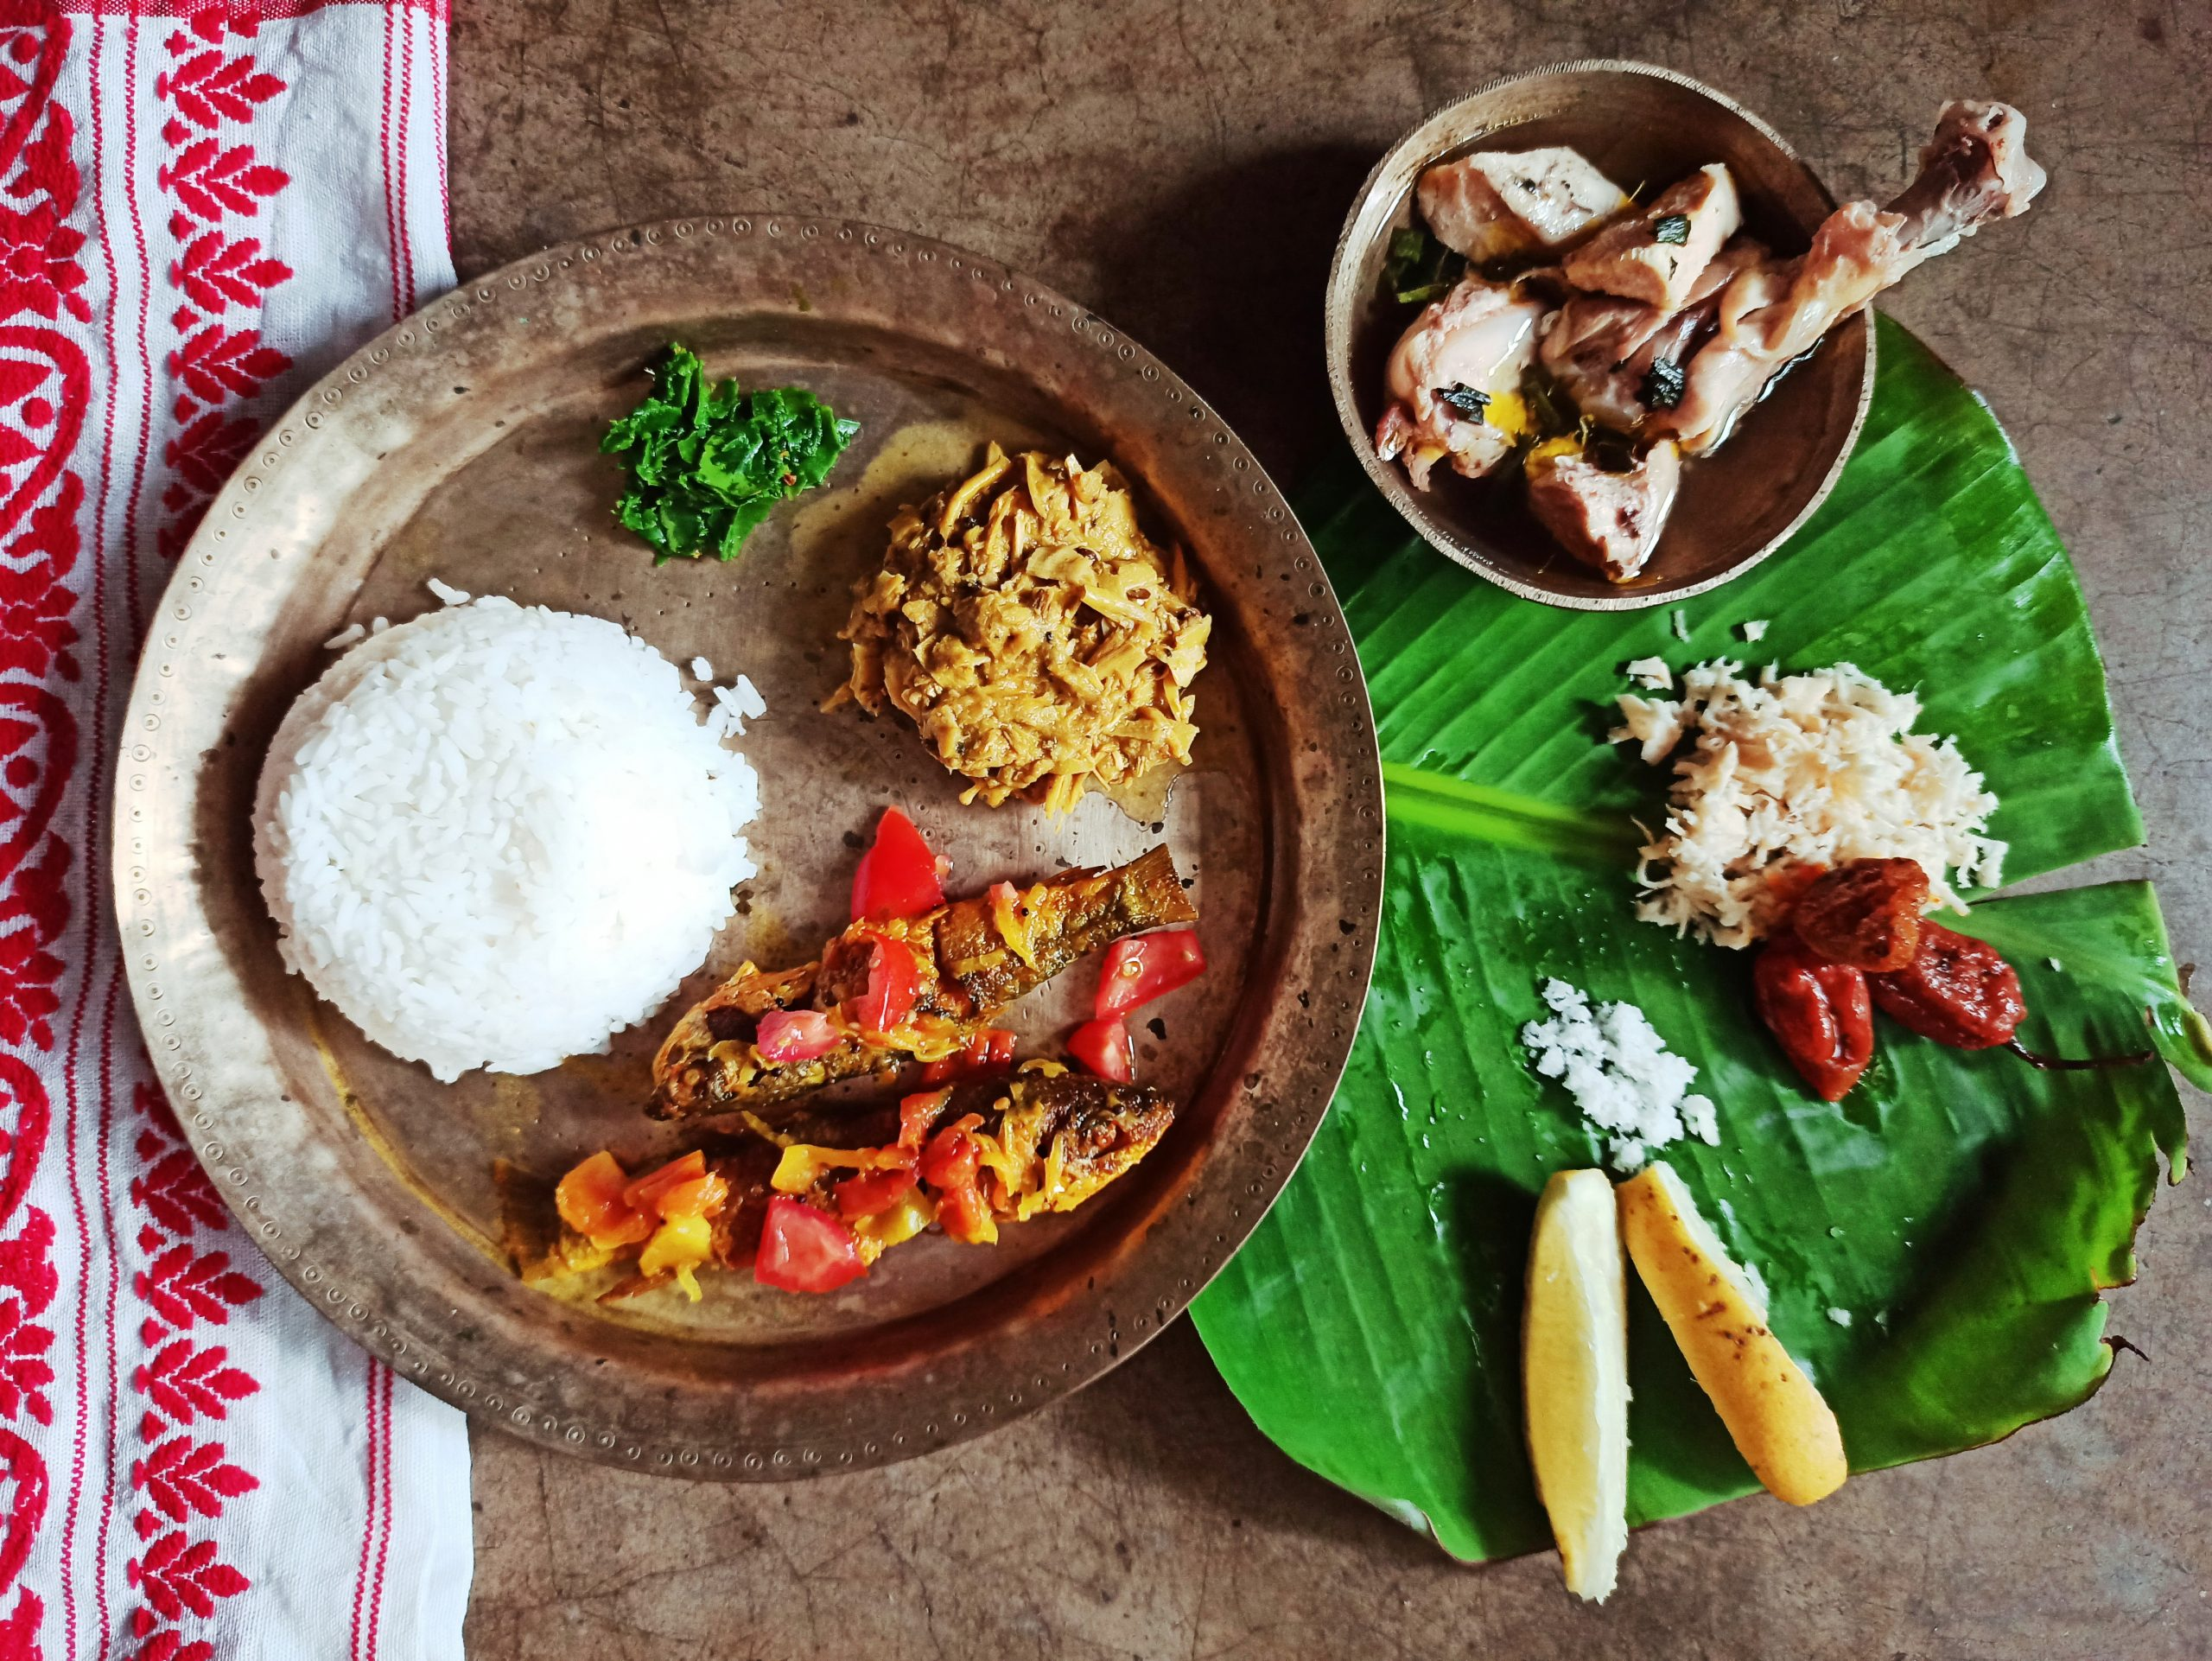 Assam Food is Awesome Food!